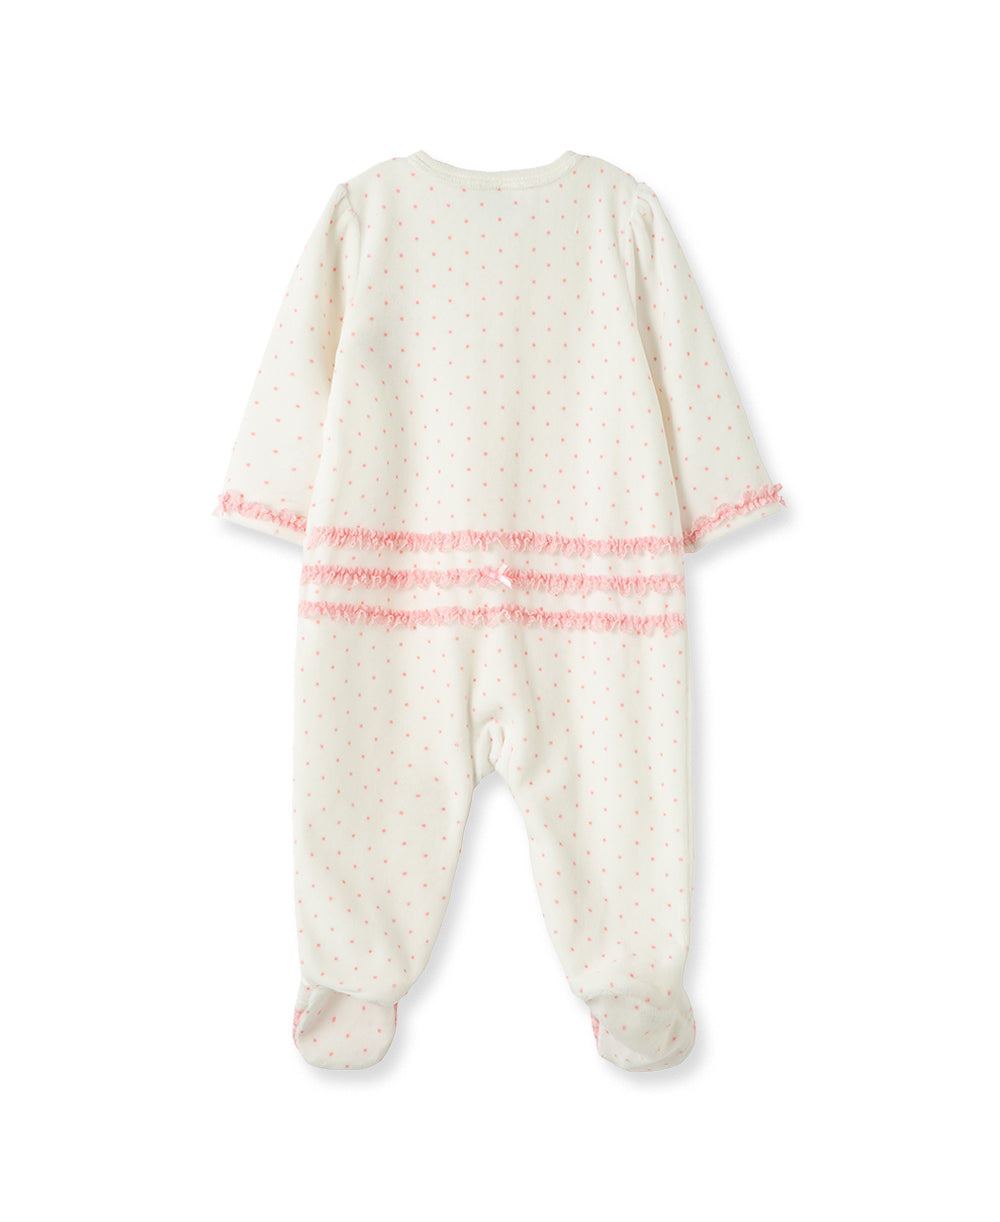 Cupcake Velour Footed One-Piece